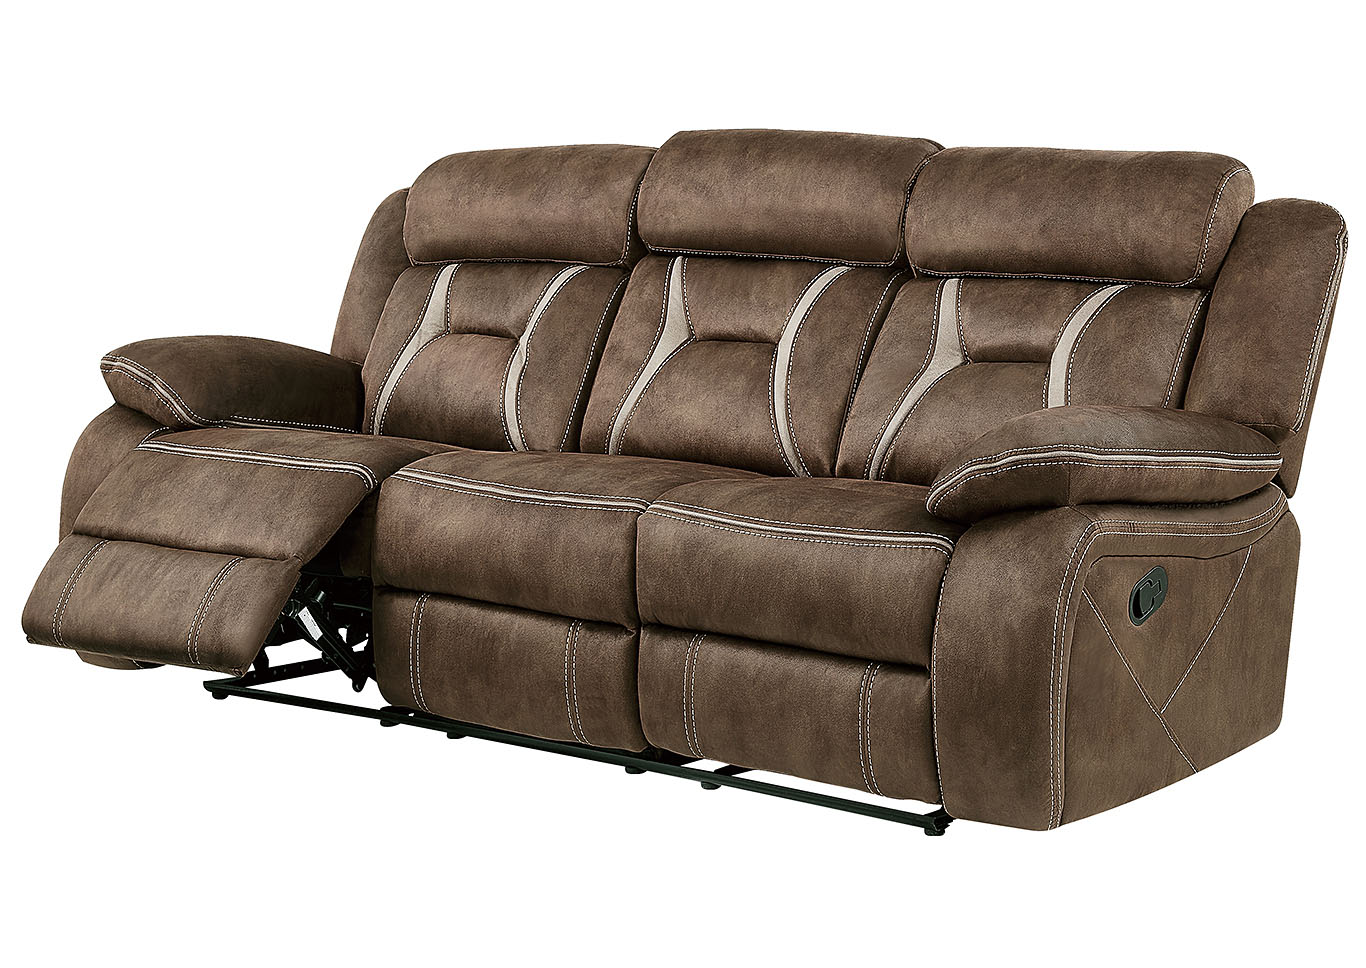 Astonishing Sell A Cow Furniture Il Sultry Dark Brown Pecan Reclining Sofa Pdpeps Interior Chair Design Pdpepsorg